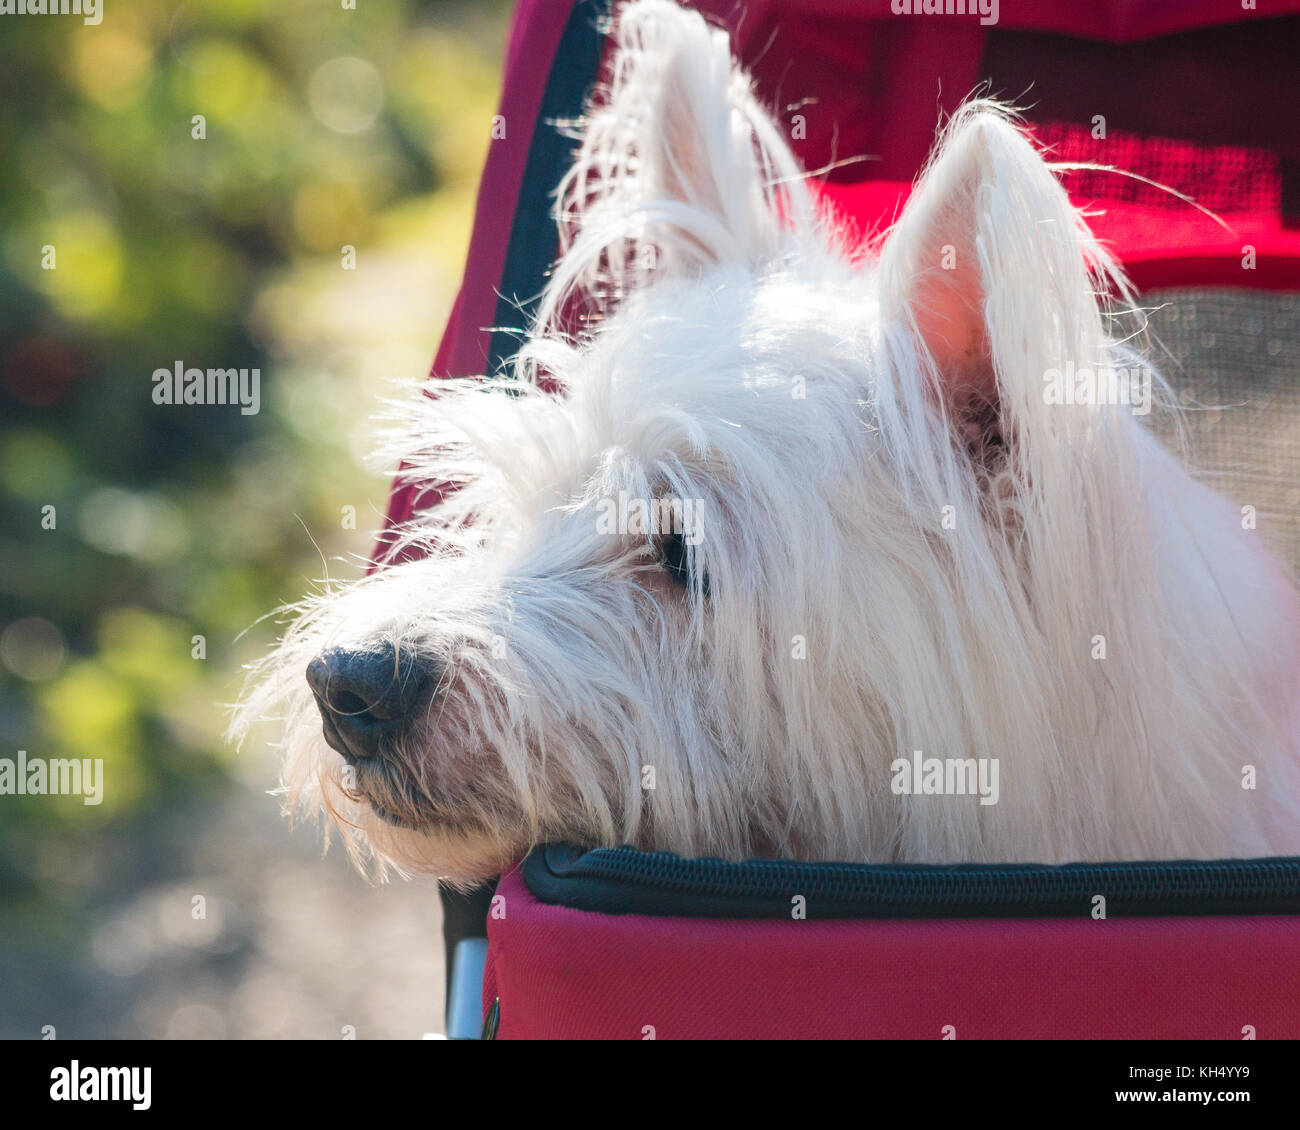 Cute west highland terrier (westie) dog  in pet stoller (pram) enjoys a ride in the  park - Stock Image